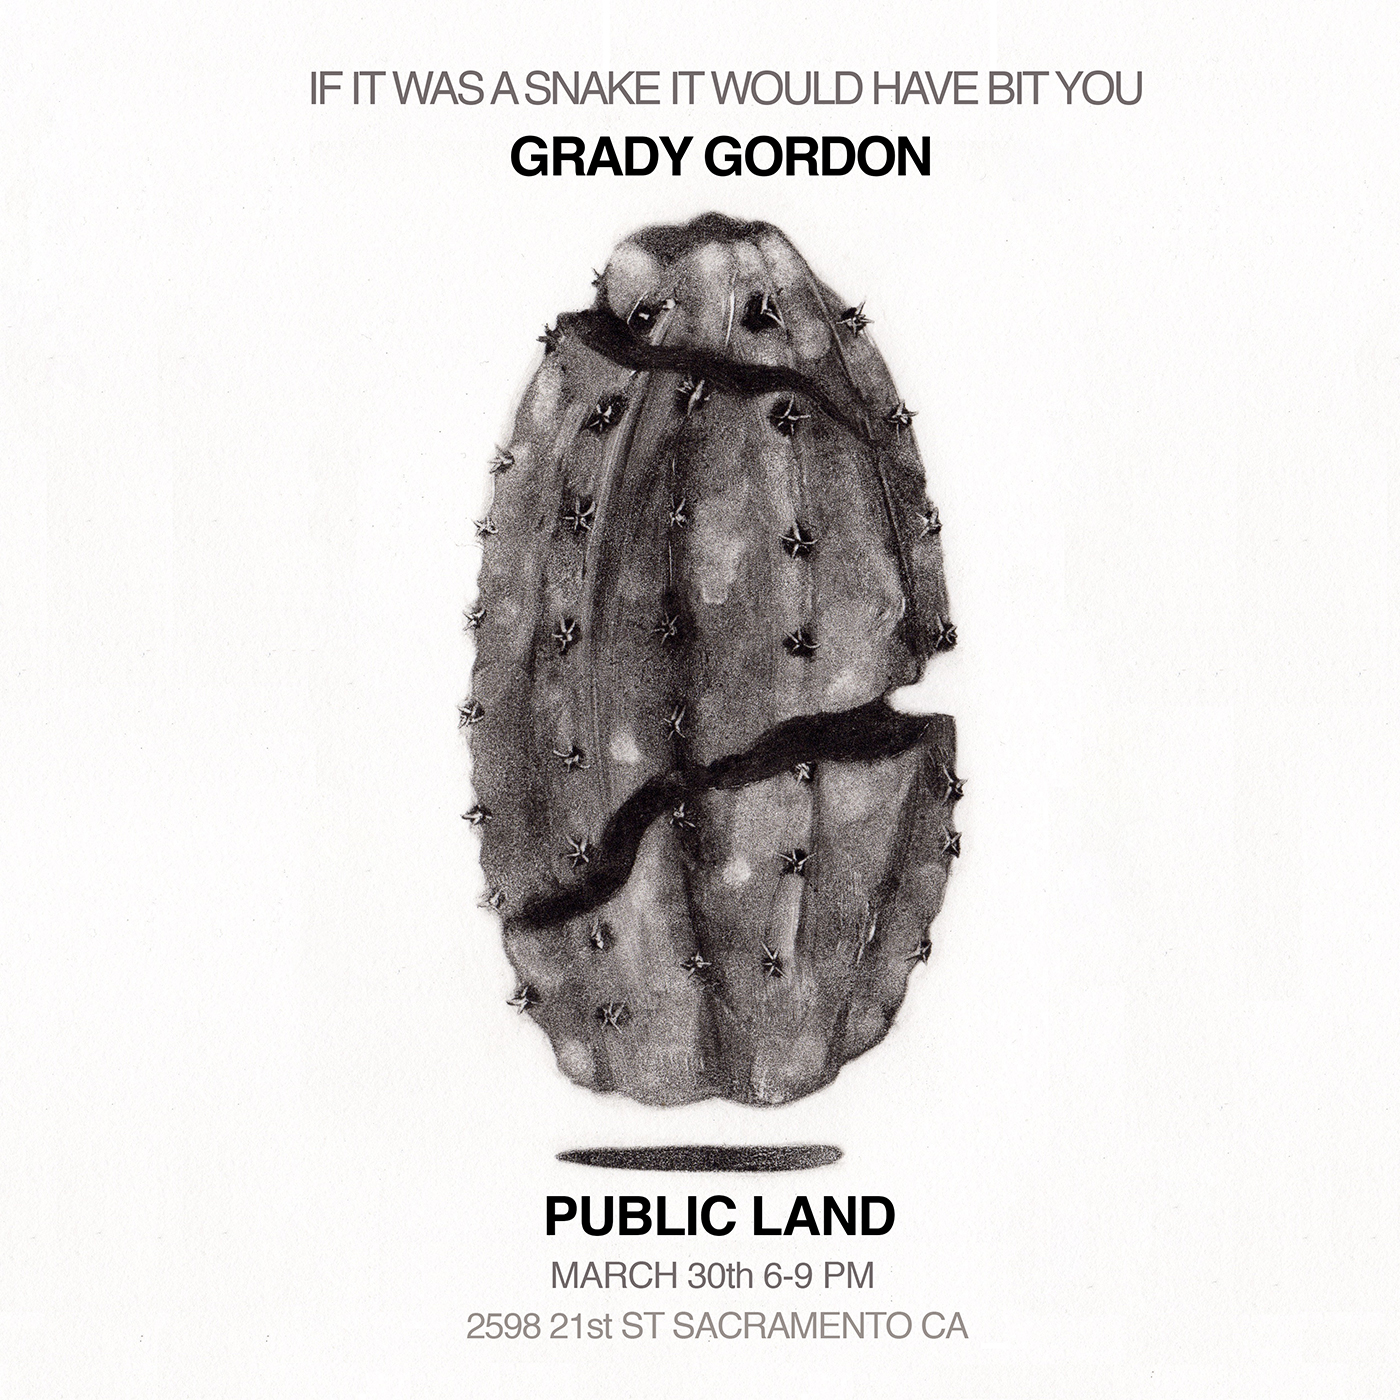 Grady Gordon art show in Public Land Sacramento